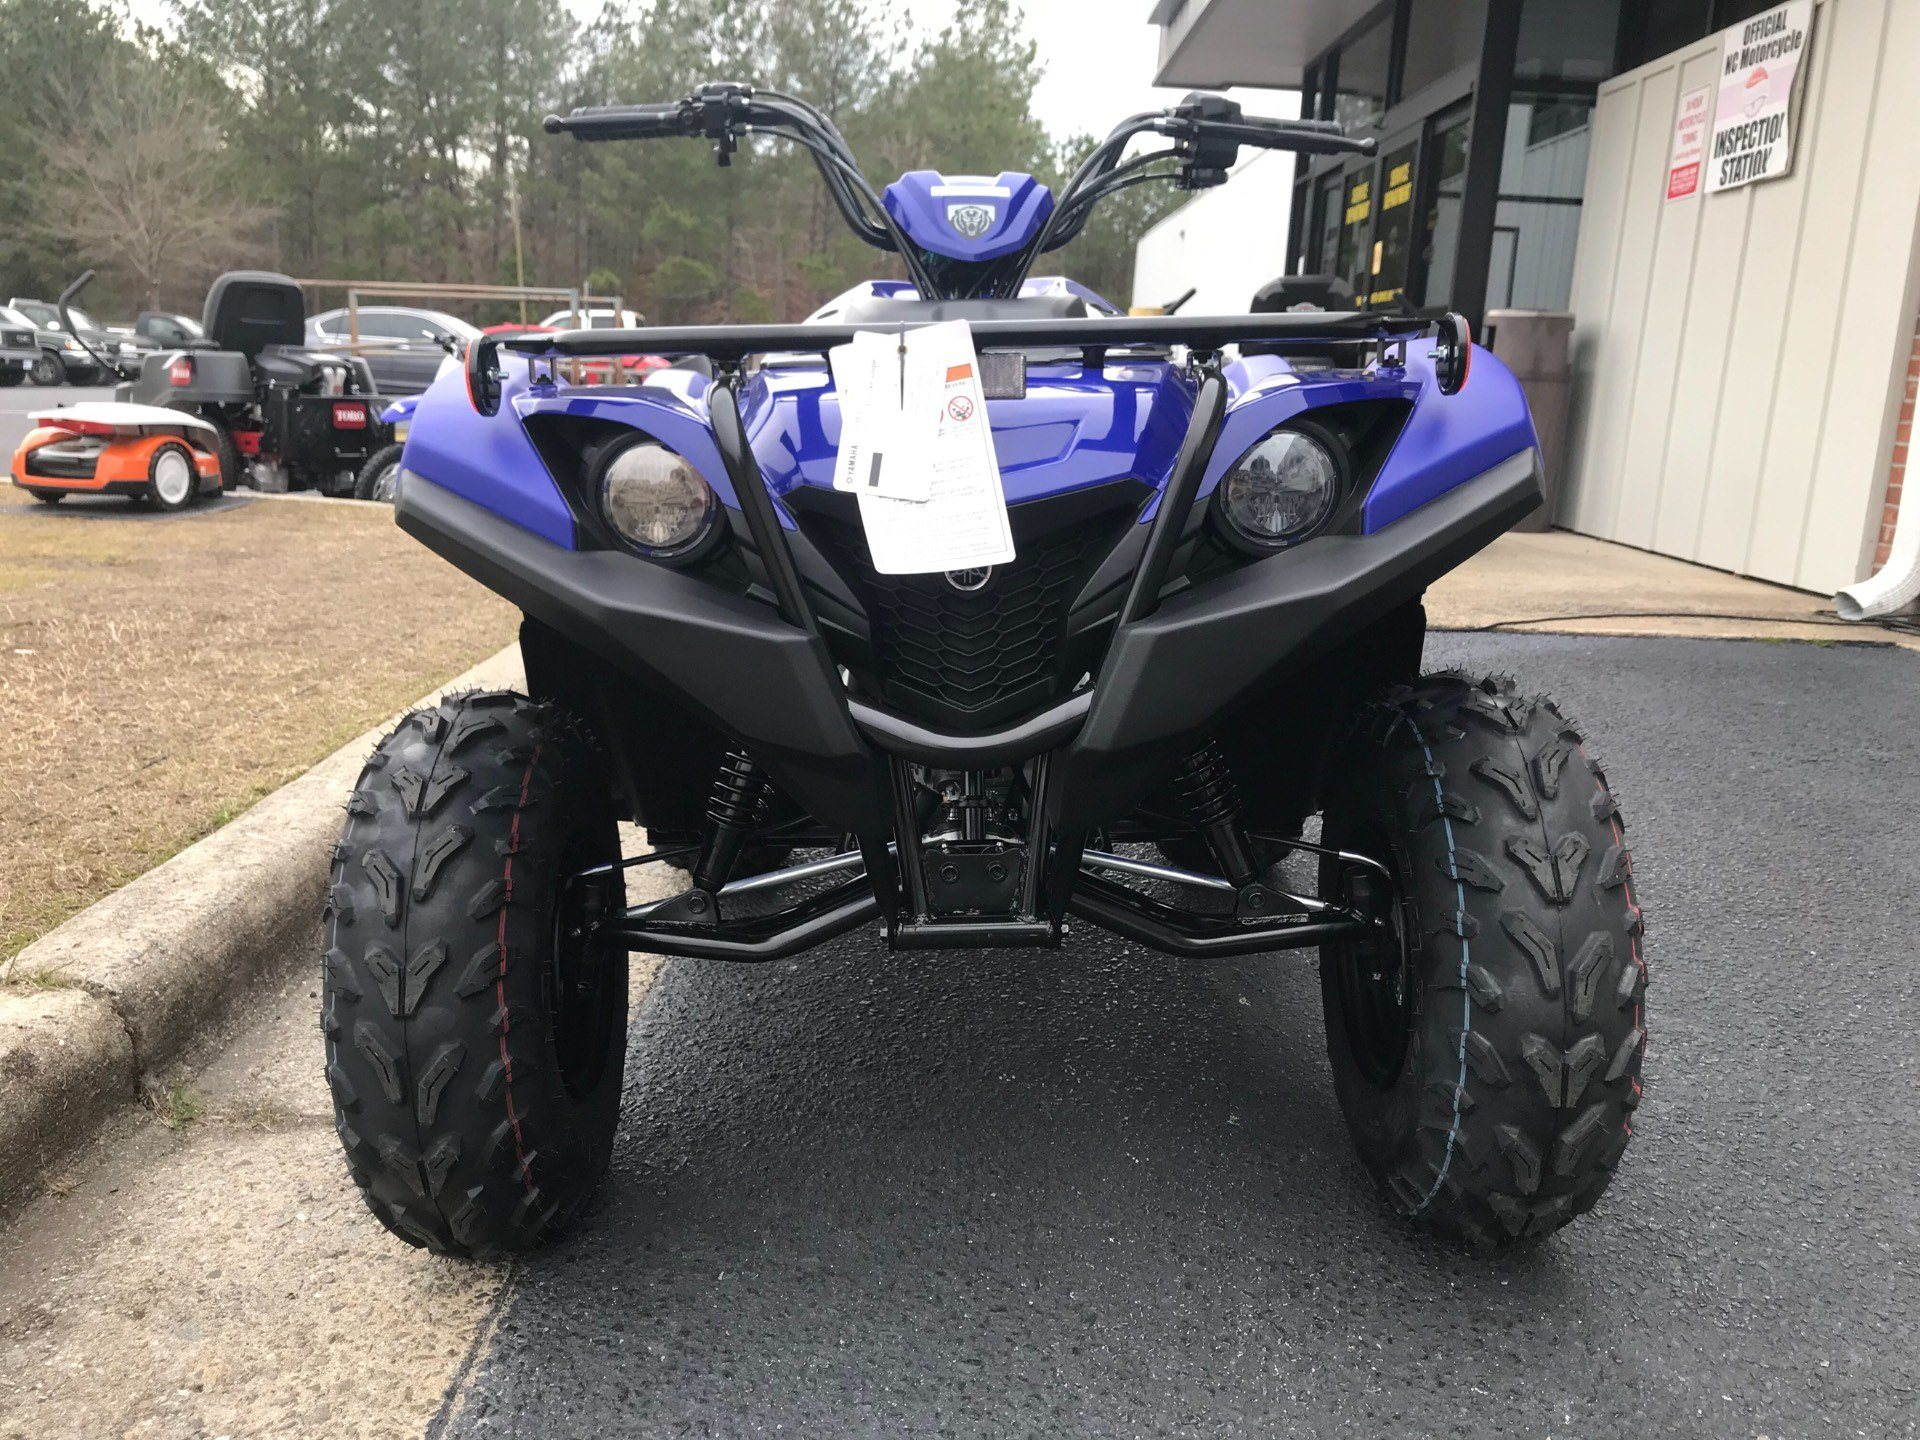 2019 Yamaha Grizzly 90 in Greenville, North Carolina - Photo 4